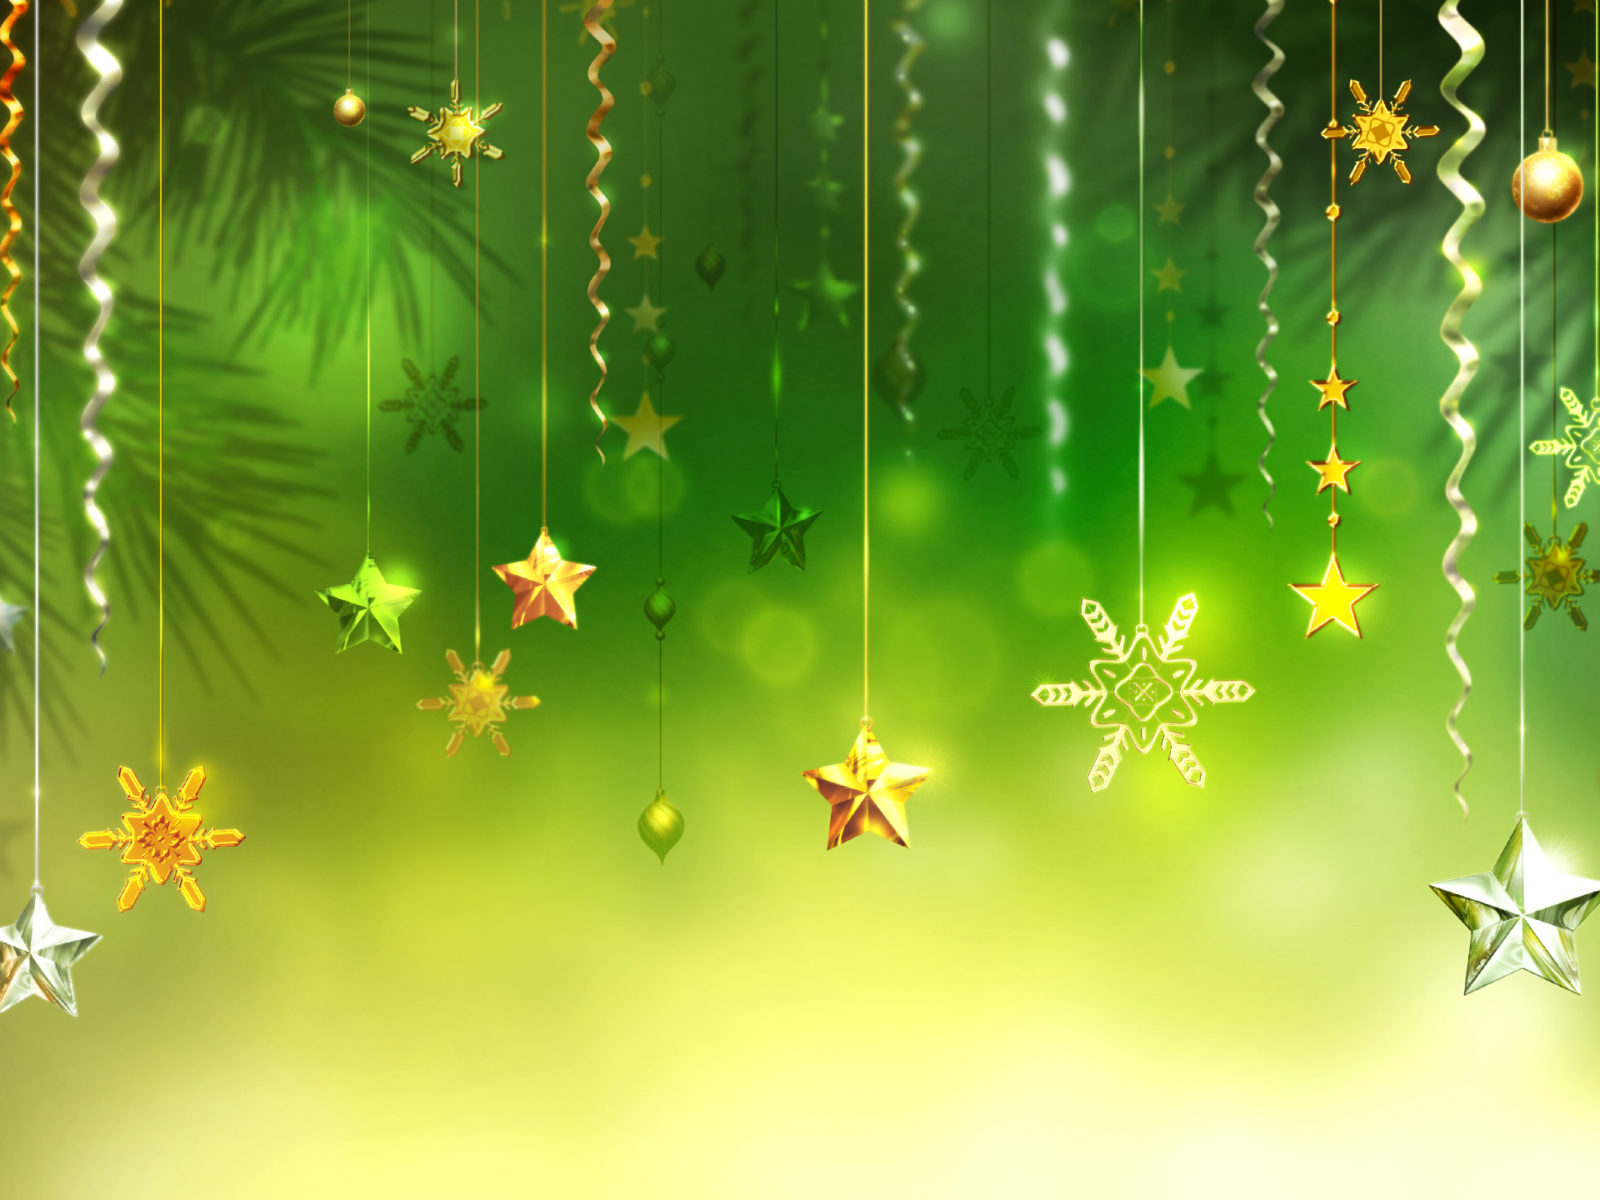 Iphone Happy New Year Wallpaper Christmas Green Background Stars Snowflakes Decorative